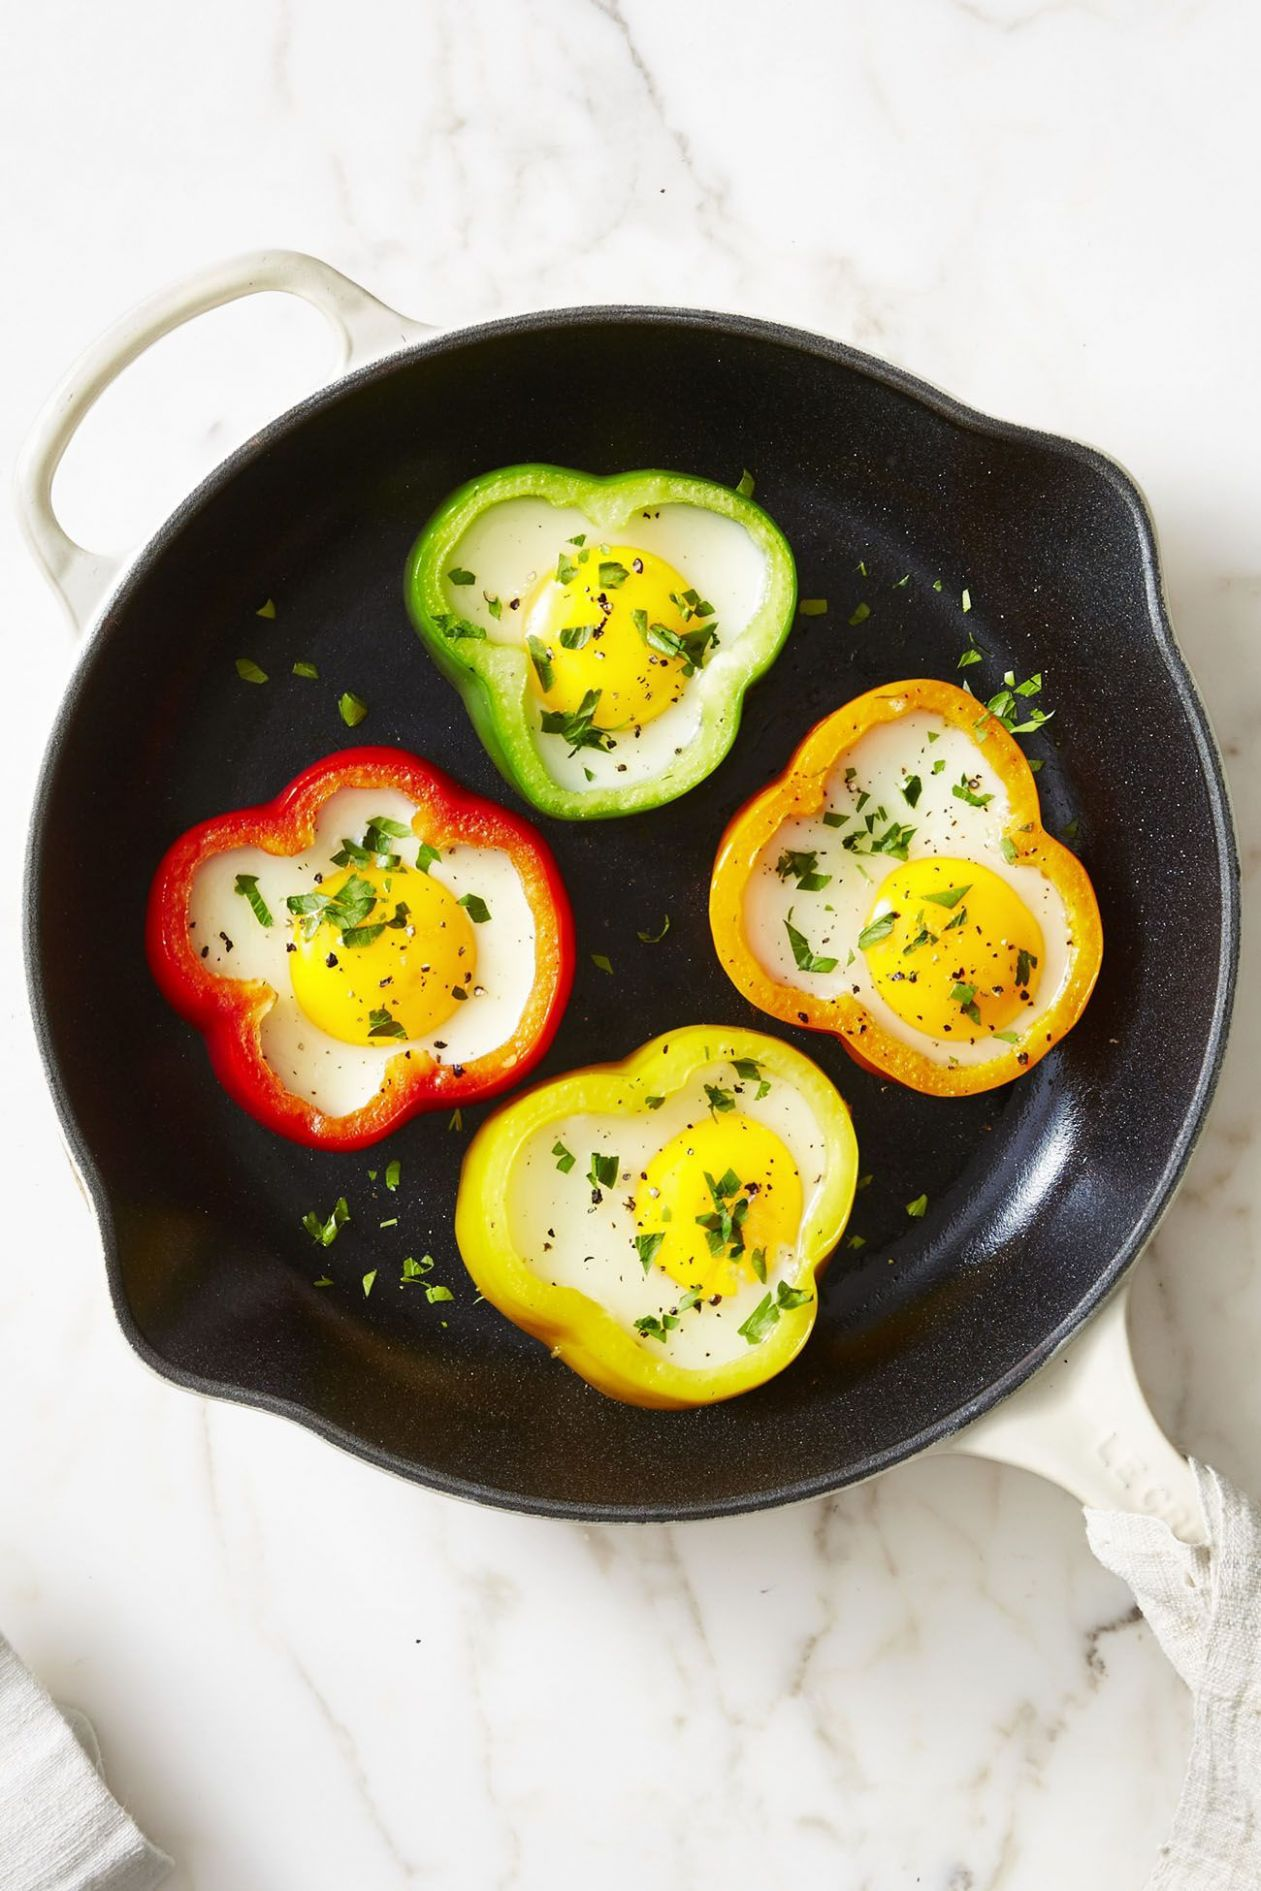 10+ Easy Egg Recipes - Ways to Cook Eggs for Breakfast - Breakfast Recipes With Eggs